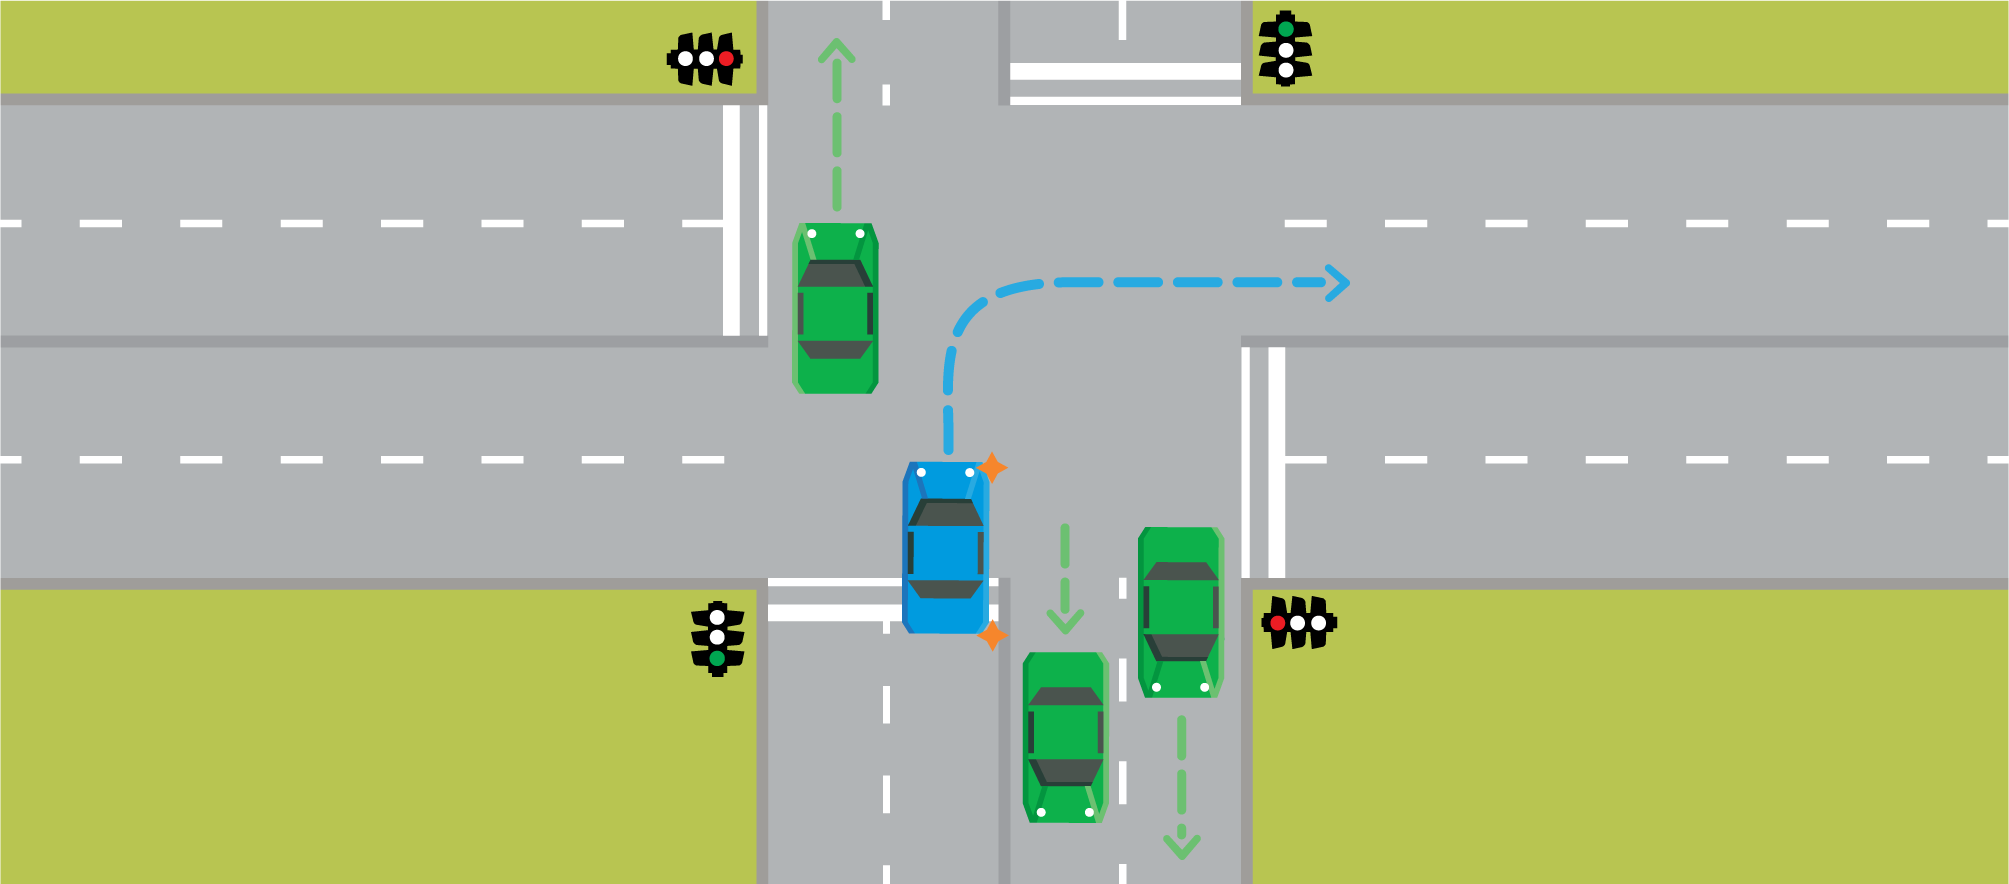 Illustration showing that a car can only pass through a green light at an intersection if there is enough room for the car on the other side